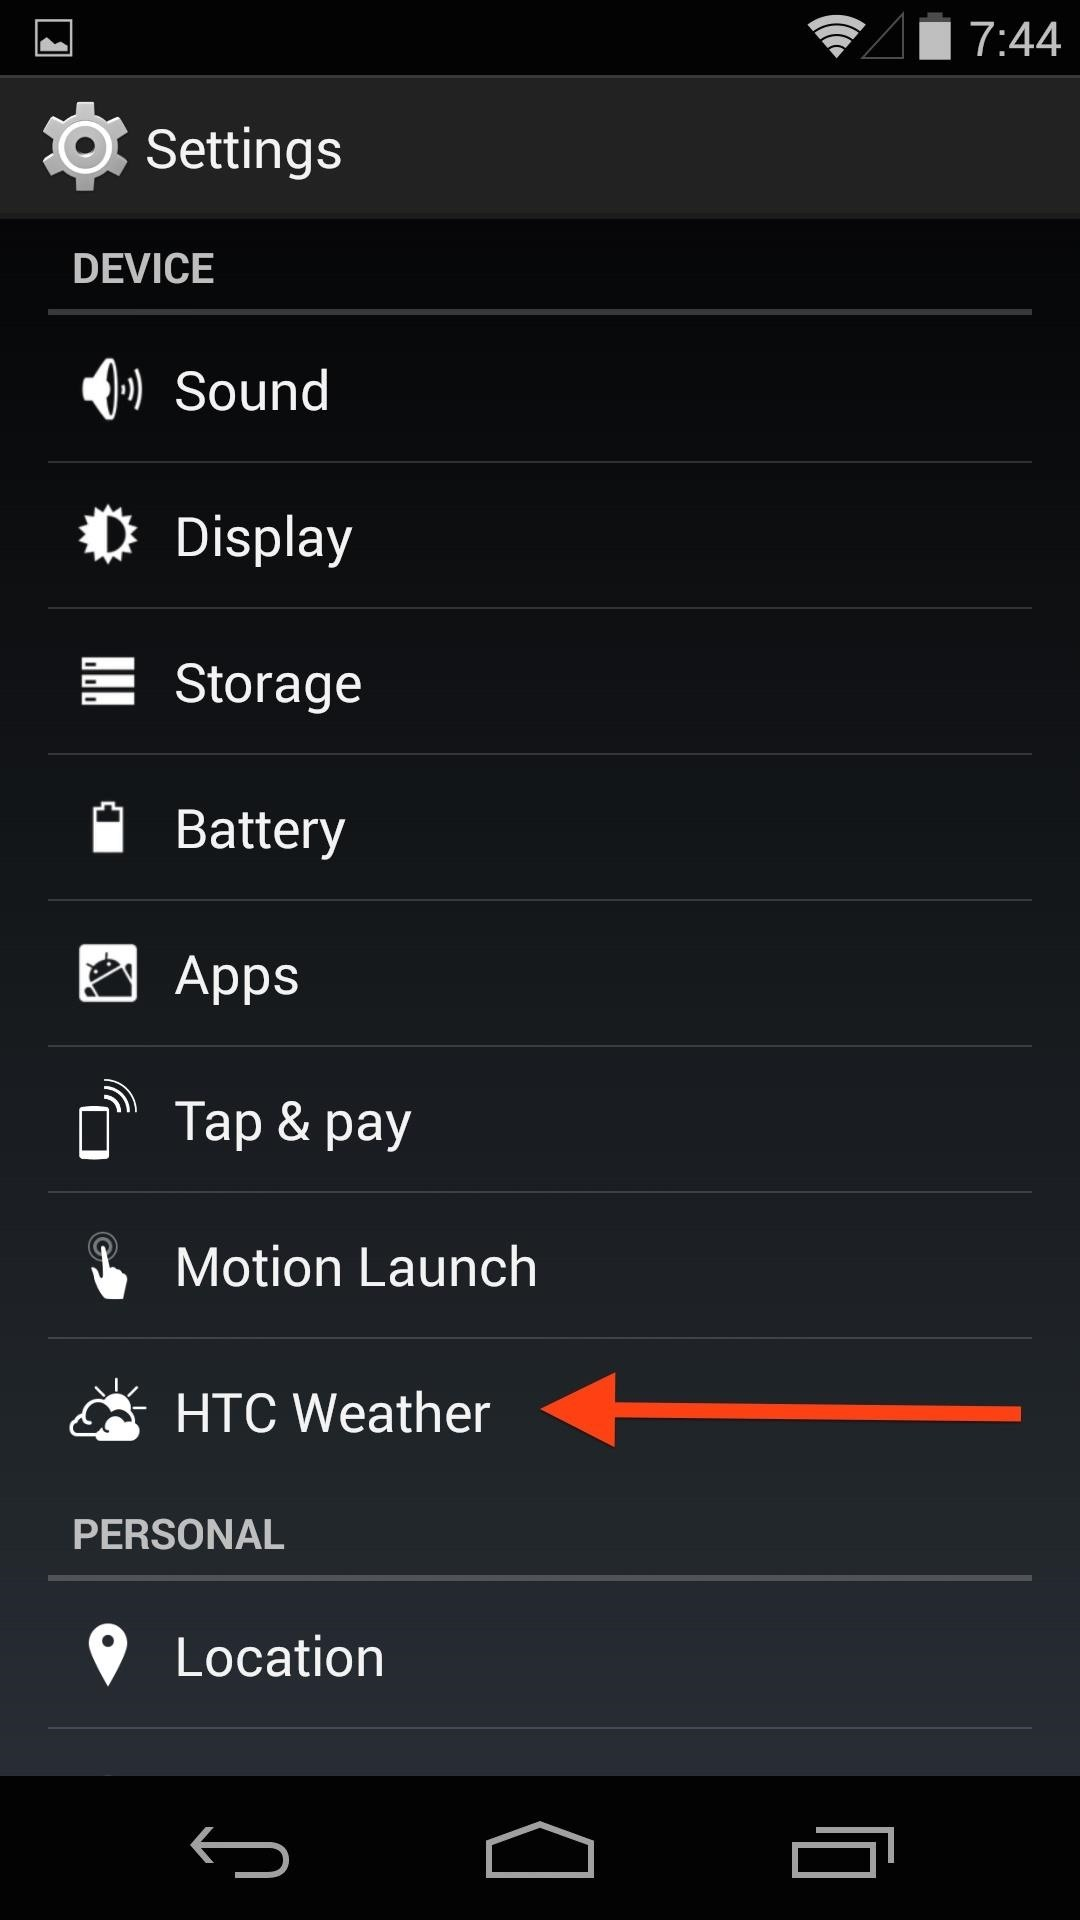 How to Update Your Rooted Google Play Edition HTC One to 4.4.3 Without Losing Any Data